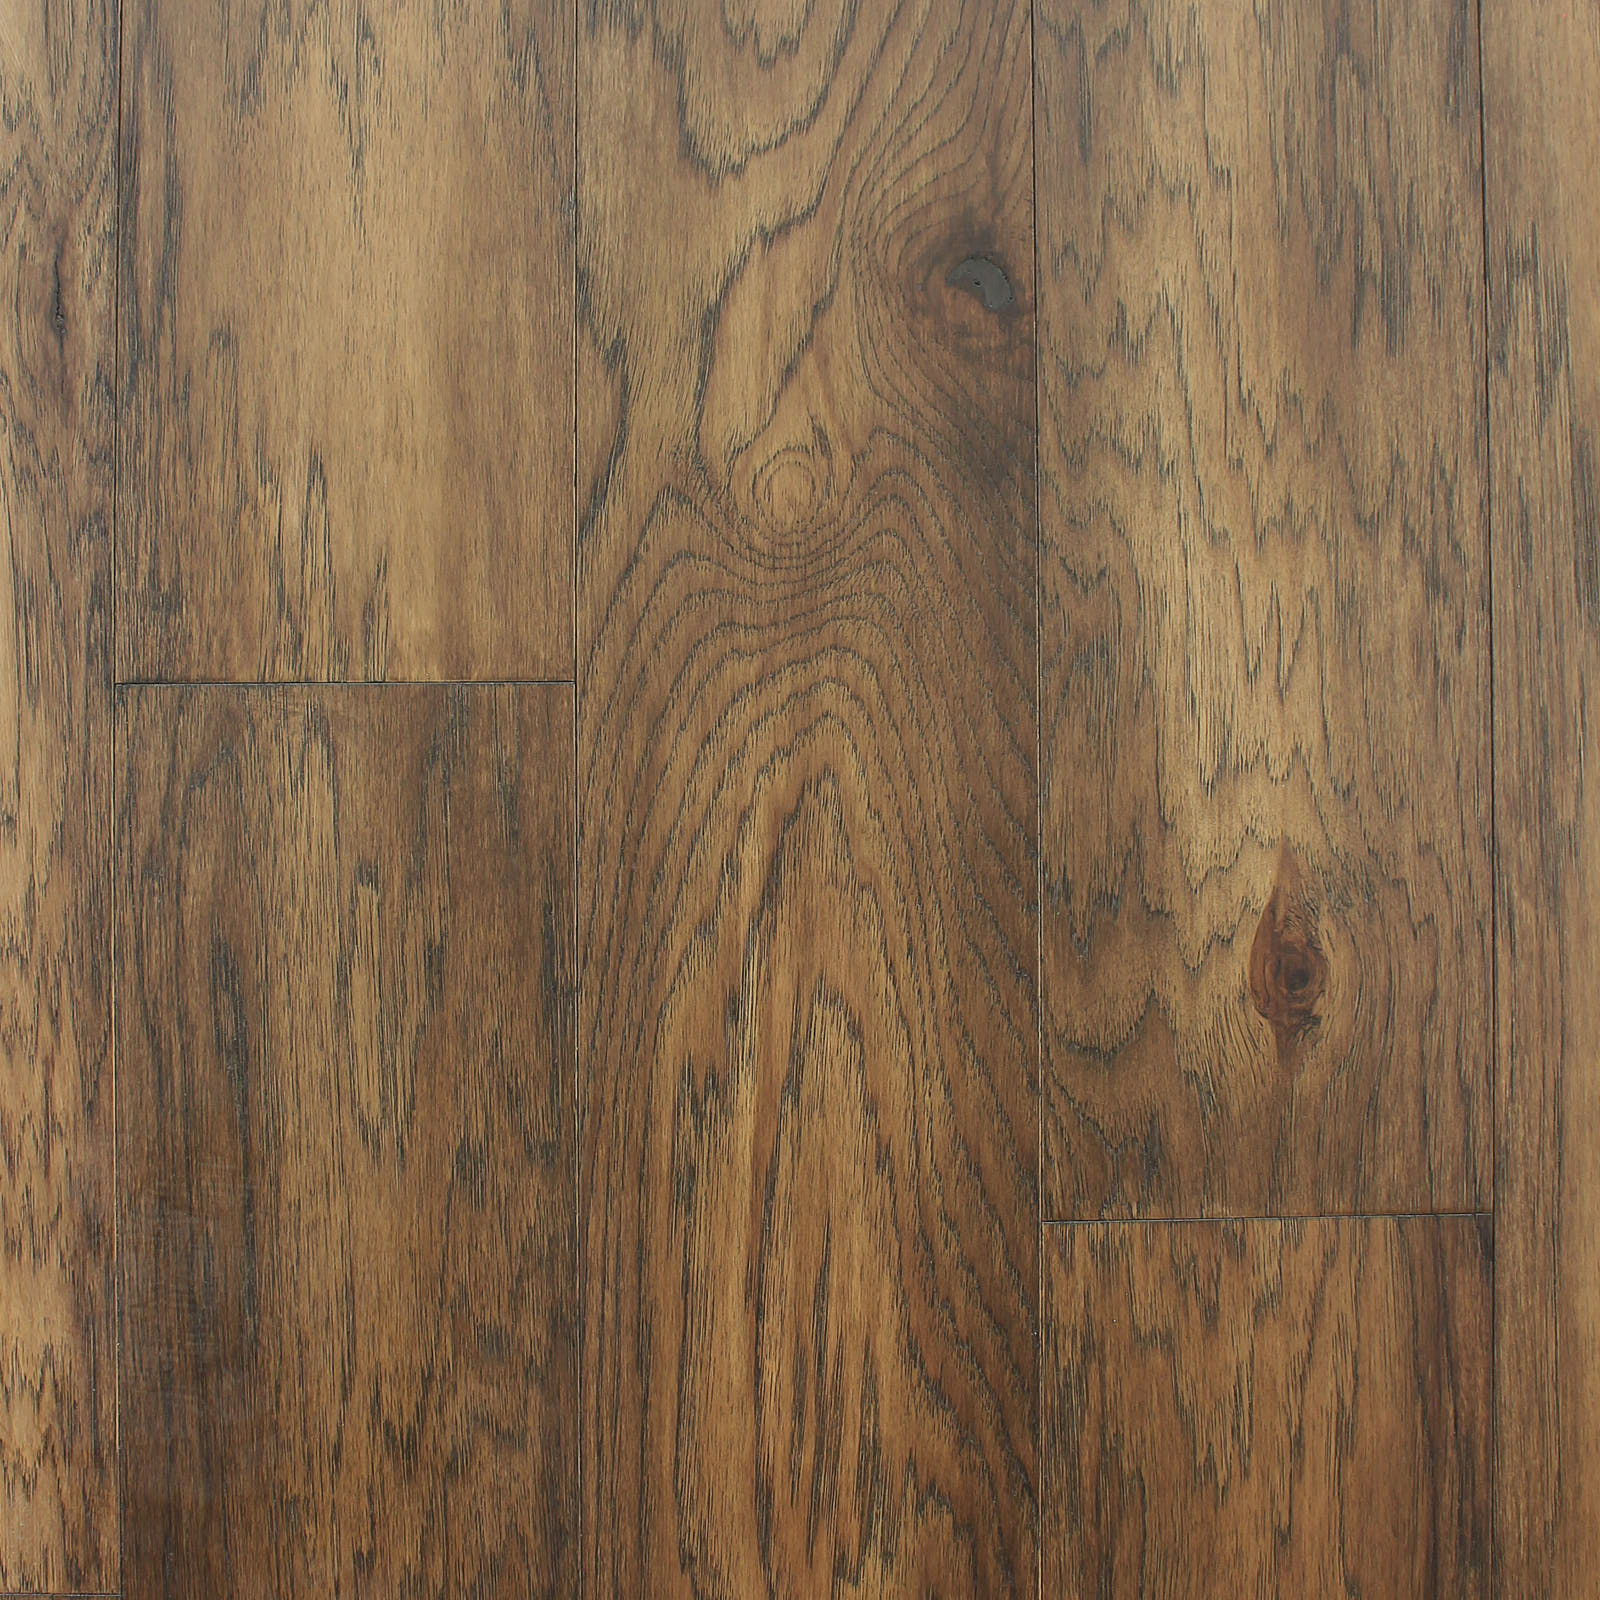 Painted Hills Fossil Bed Engineered Hardwood Flooring